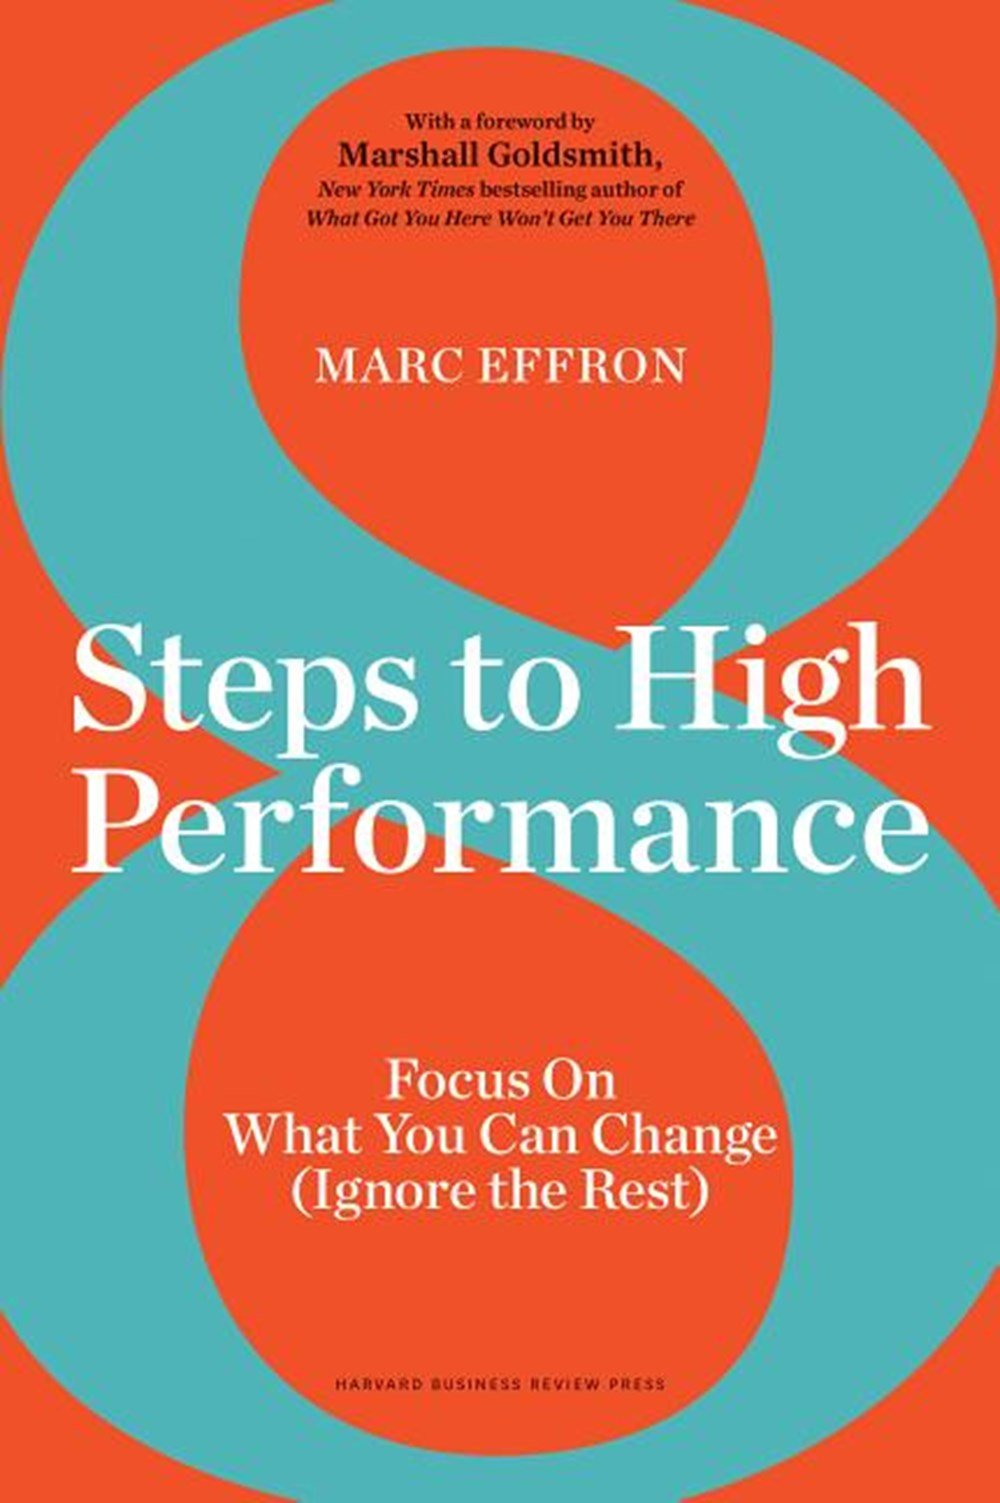 8 Steps to High Performance Focus on What You Can Change (Ignore the Rest)